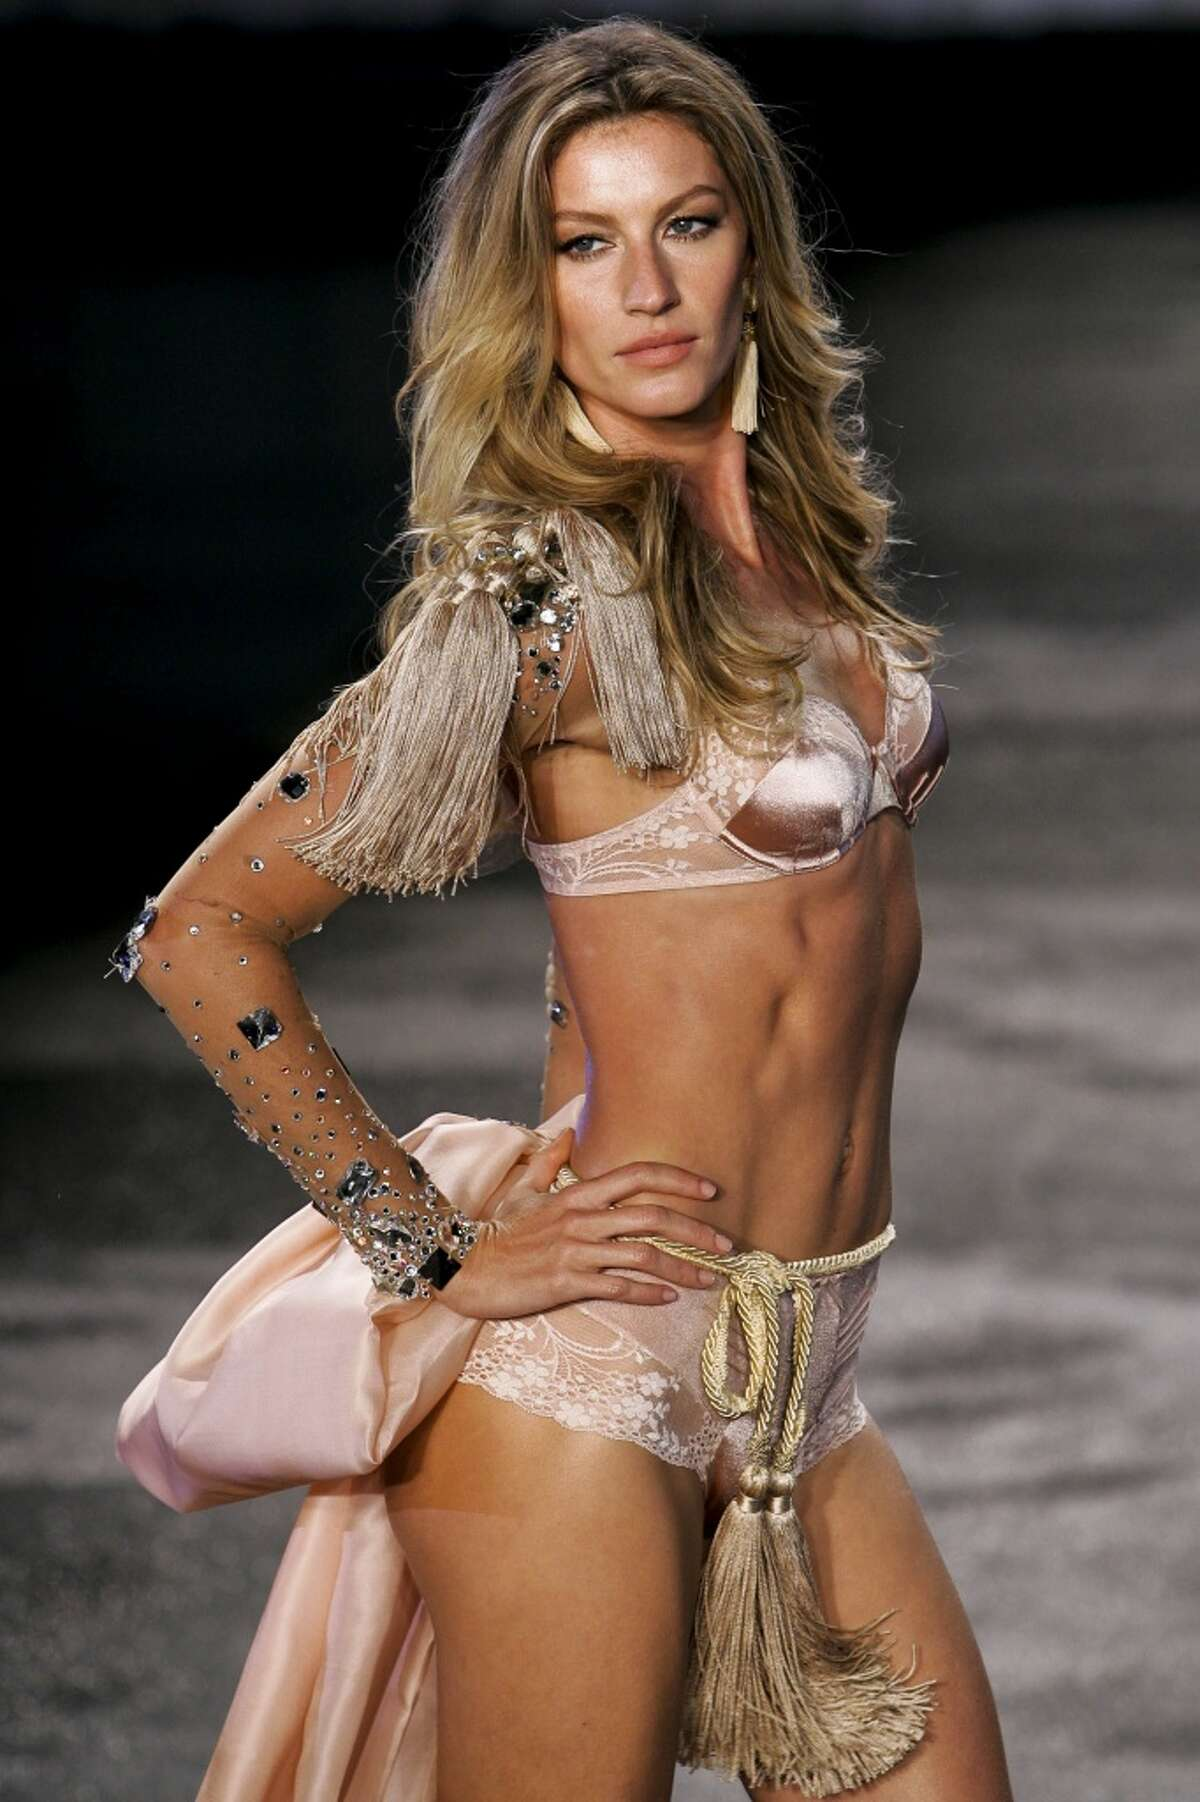 Top model Gisele Bundchen in the runway to show her collection of lingerie brand in partnership with Hope on May 12, 2011 in Sao Paulo, Brazil.